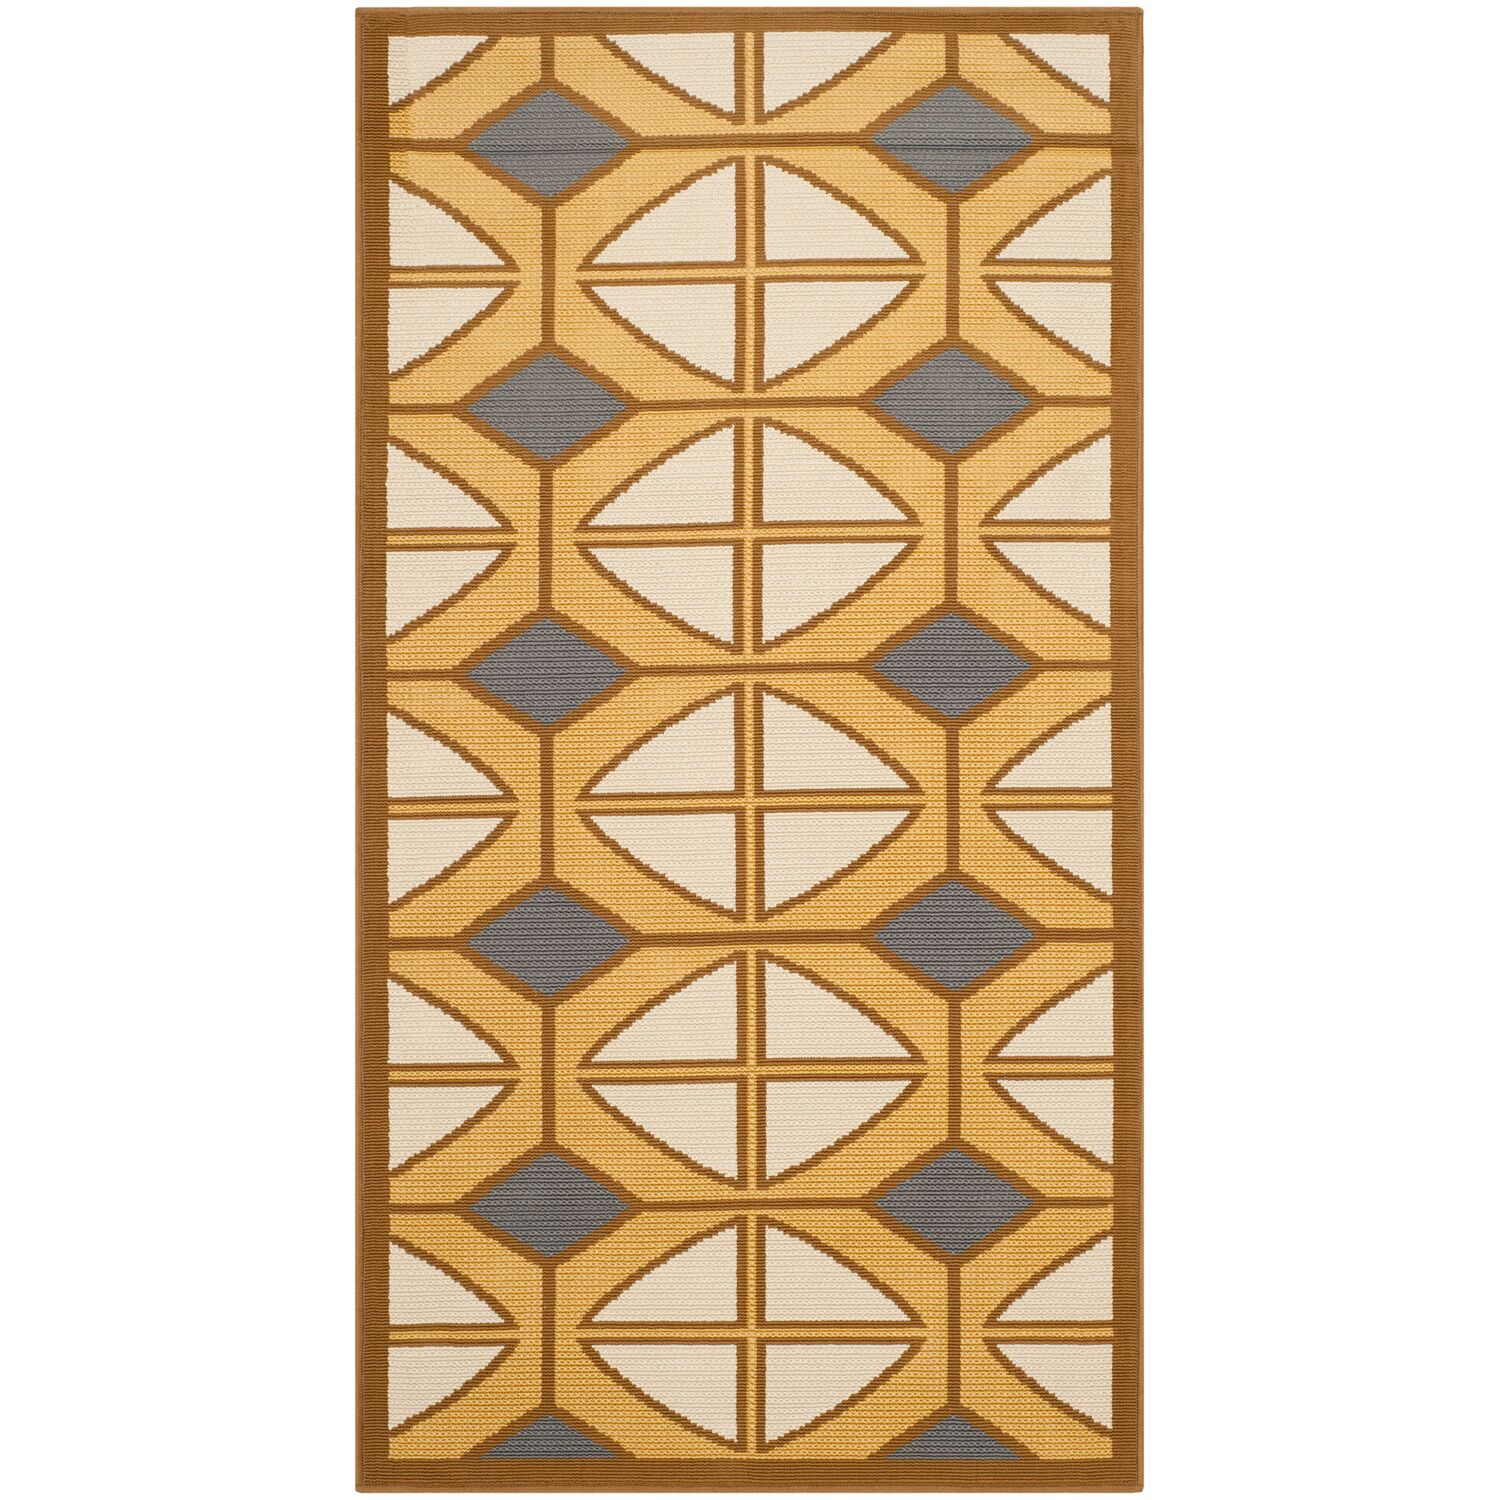 Hampton Ivory Geometric Outdoor Area Rug Rug Size: Rectangle 8' x 11'